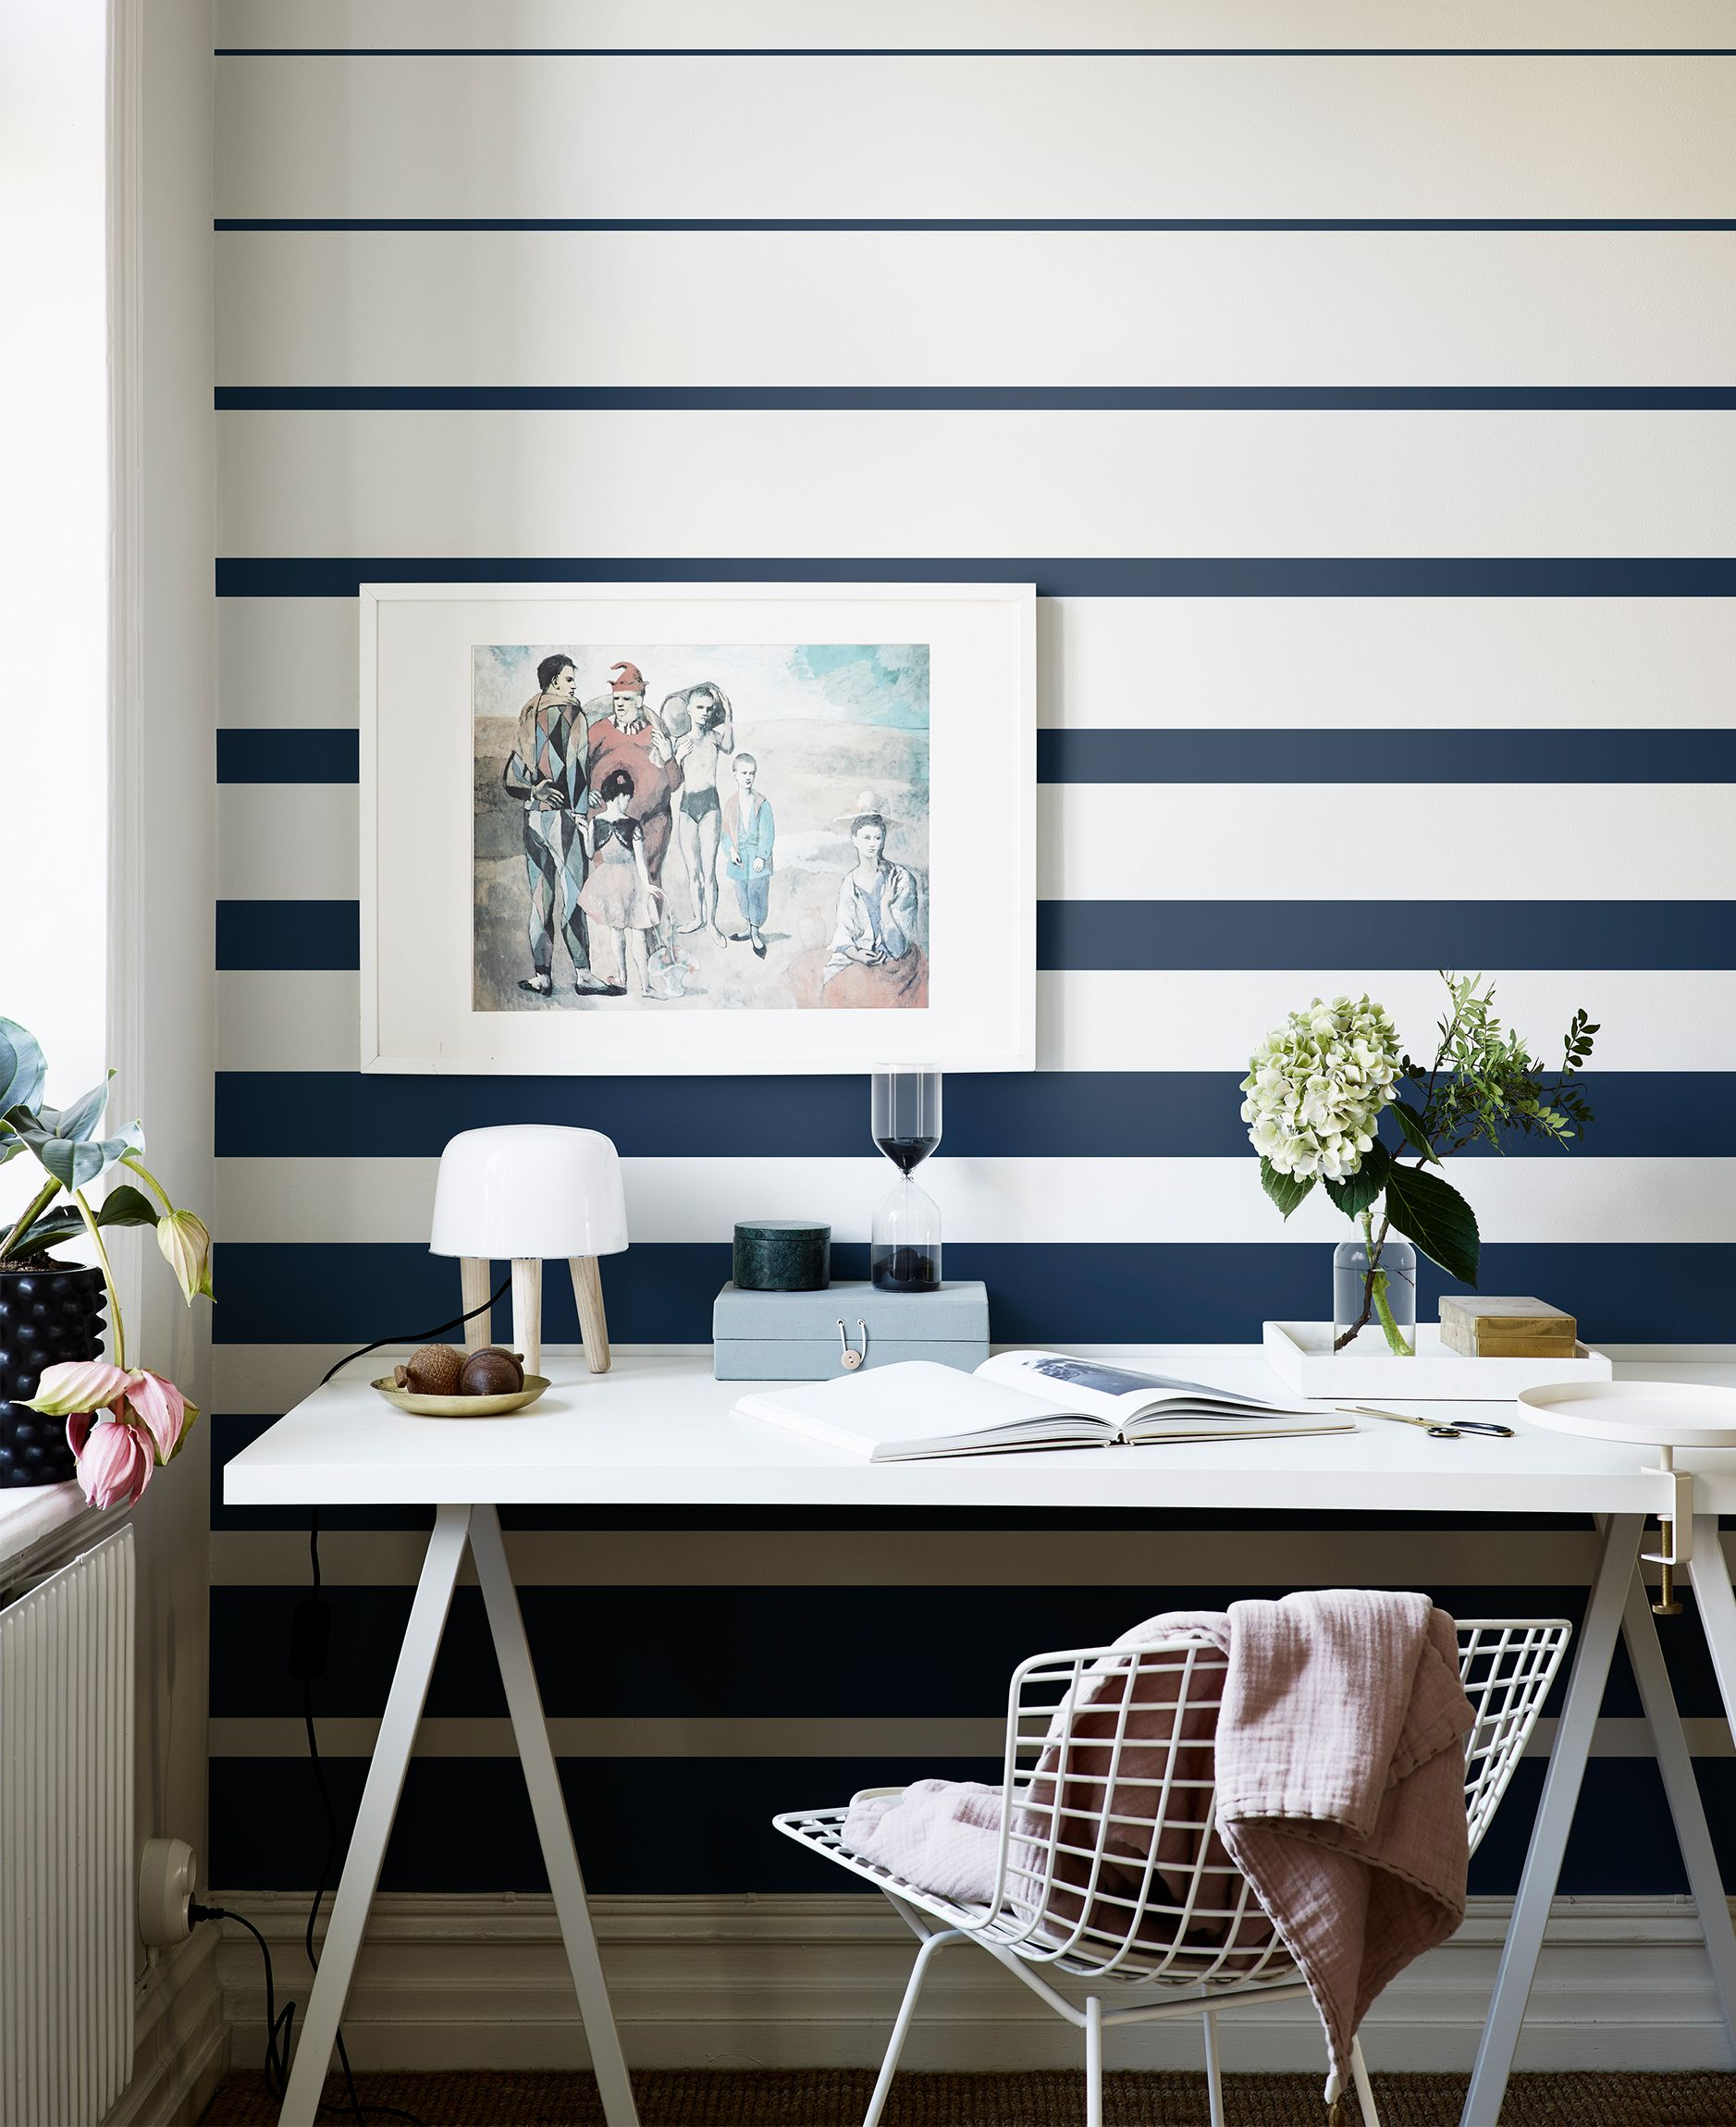 10 striped wallpaper design ideas gradually narrowing stripes just like with the fjordbyen design is a perfect way to add visual height and interest to